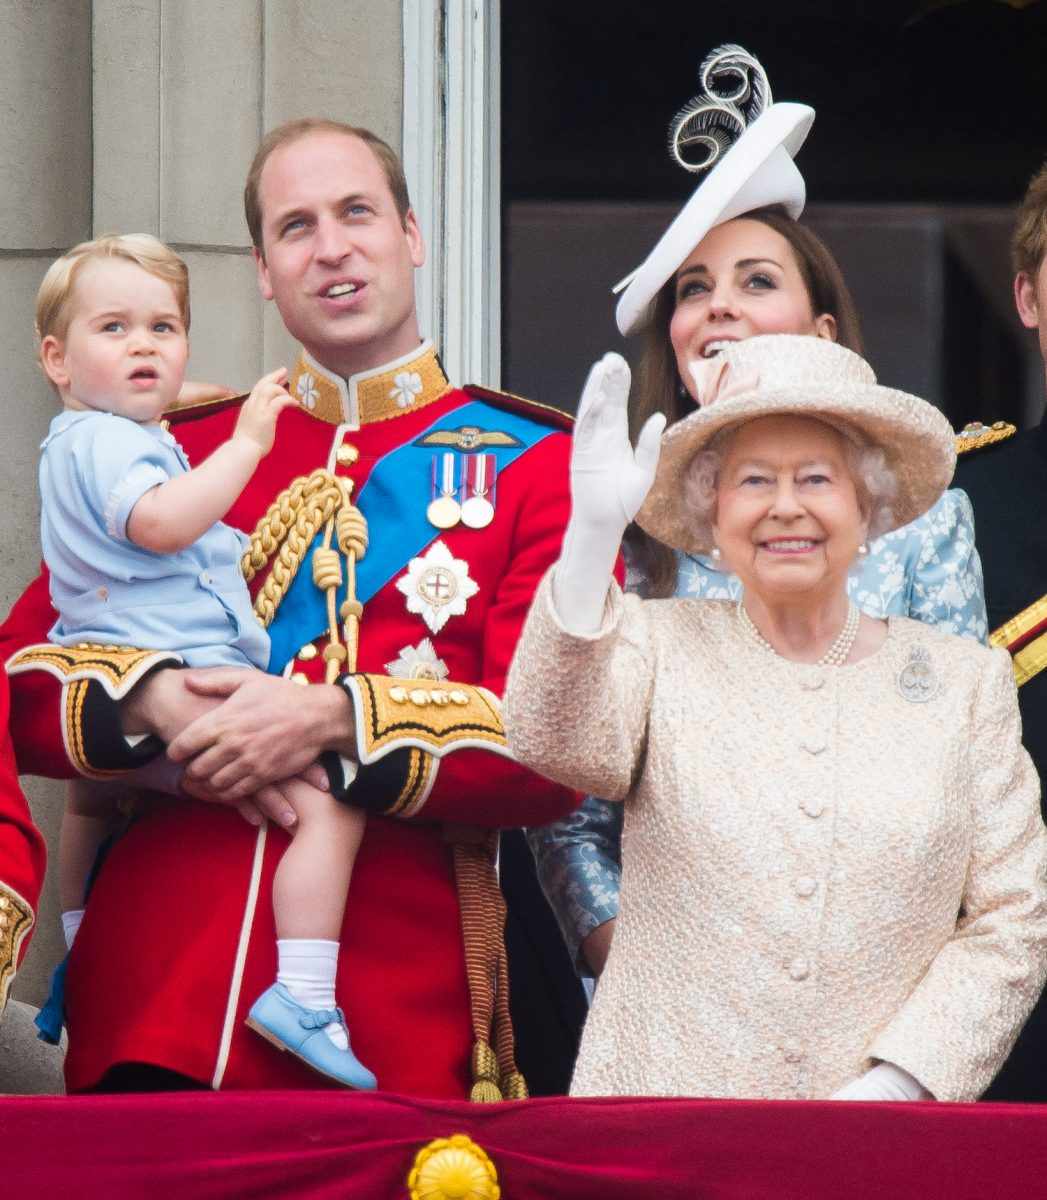 Prince William, Kate Middleton, Prince George, and Queen Elizabeth II at 2015 Trooping the Colour